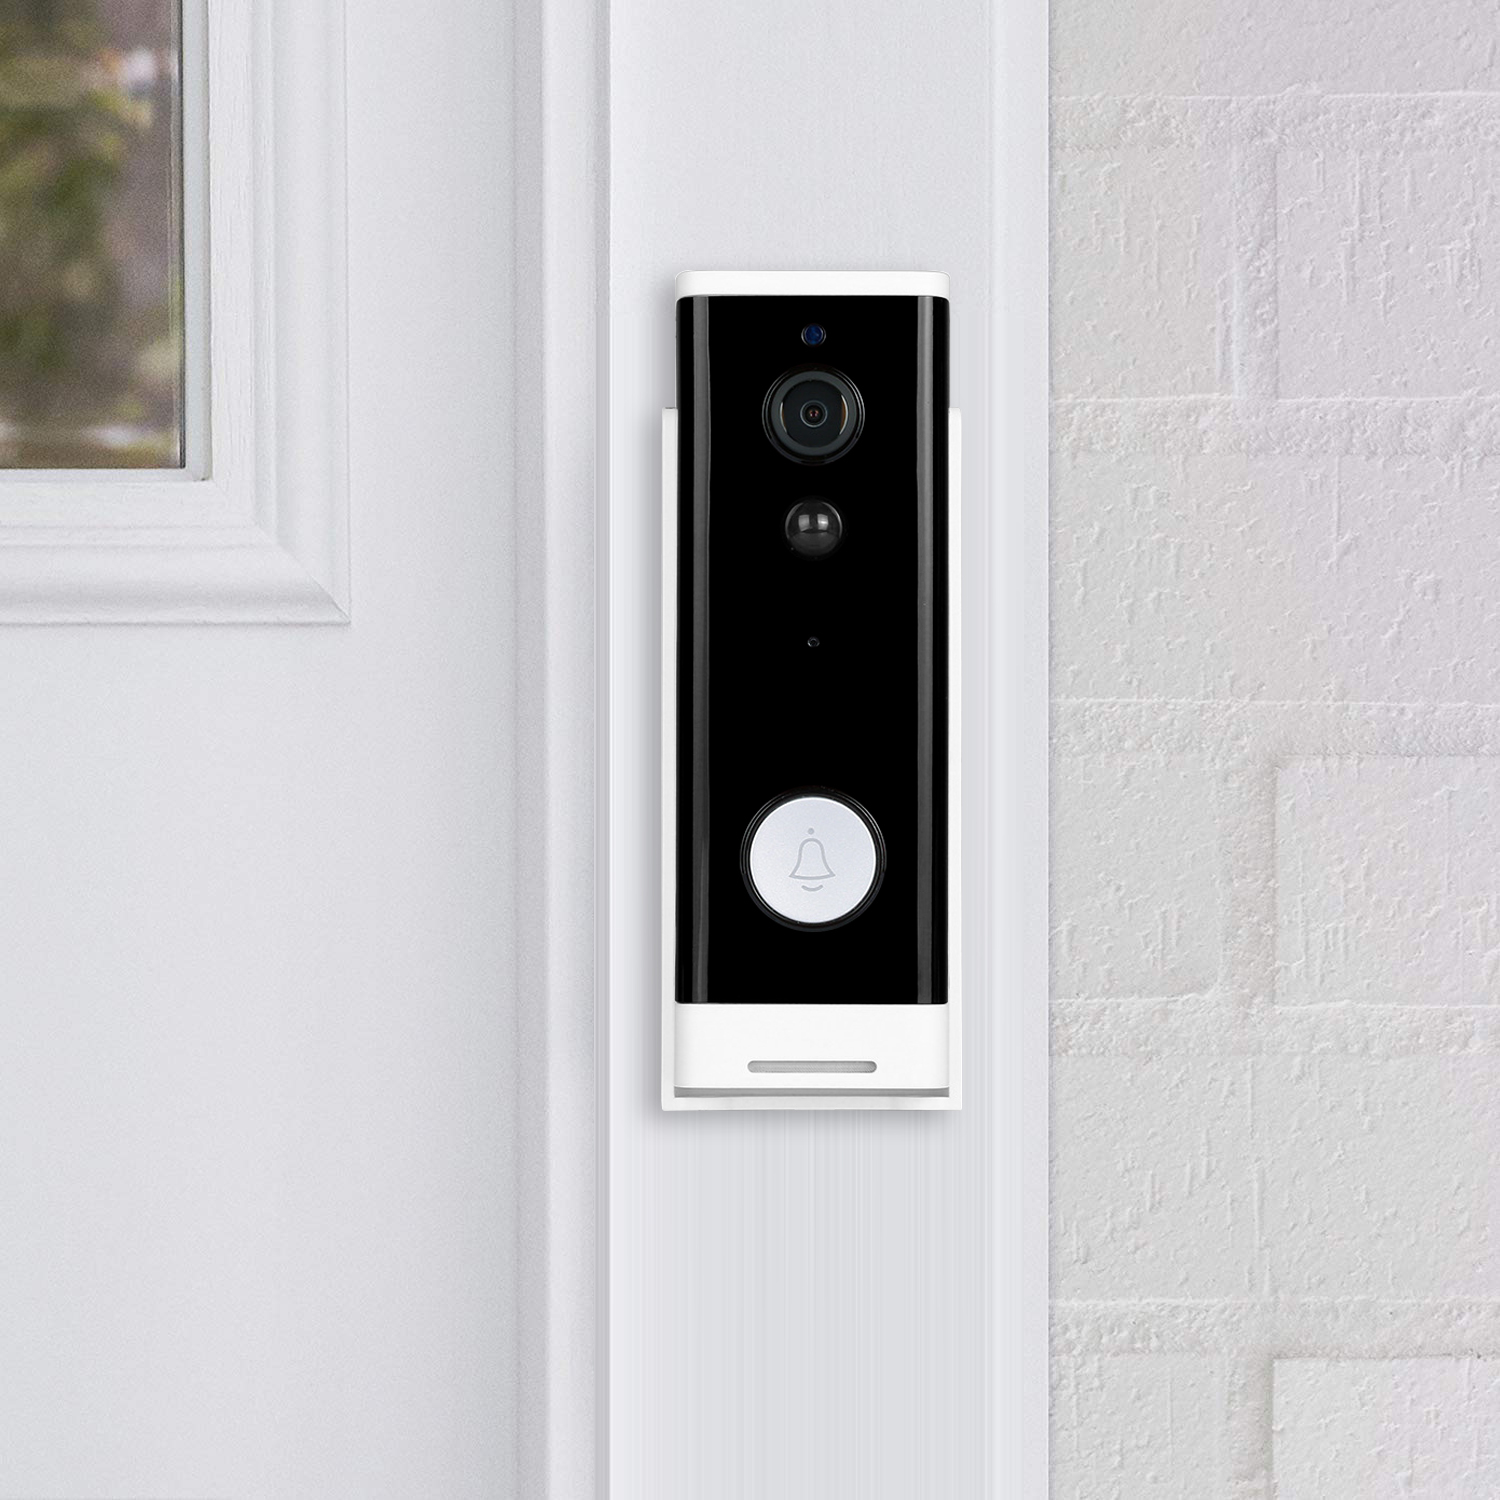 Enerna IoTech Wireless Security Video Doorbell Support TUYA APP Remote Control